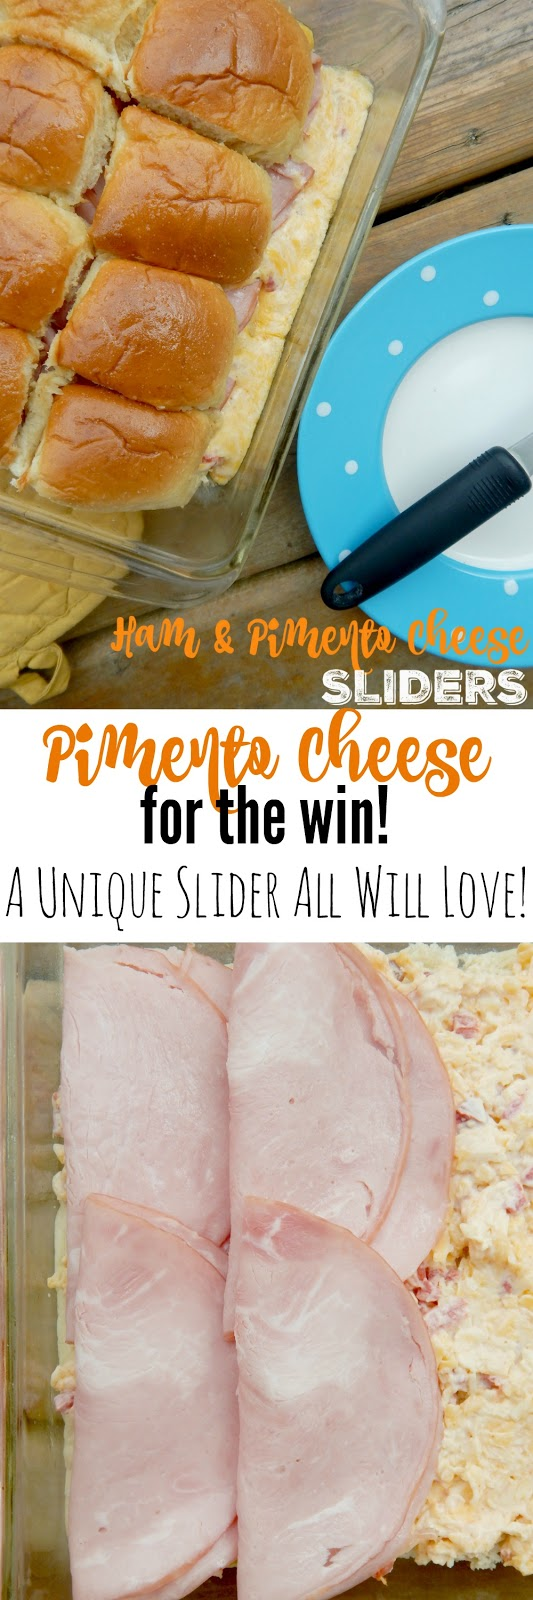 Ham and Pimento Cheese Sliders...a sandwich you will not be able to walk away from!  Salty ham, spicy pimento cheese all on a buttery bun.  Delicious! (sweetandsavoryfood.com